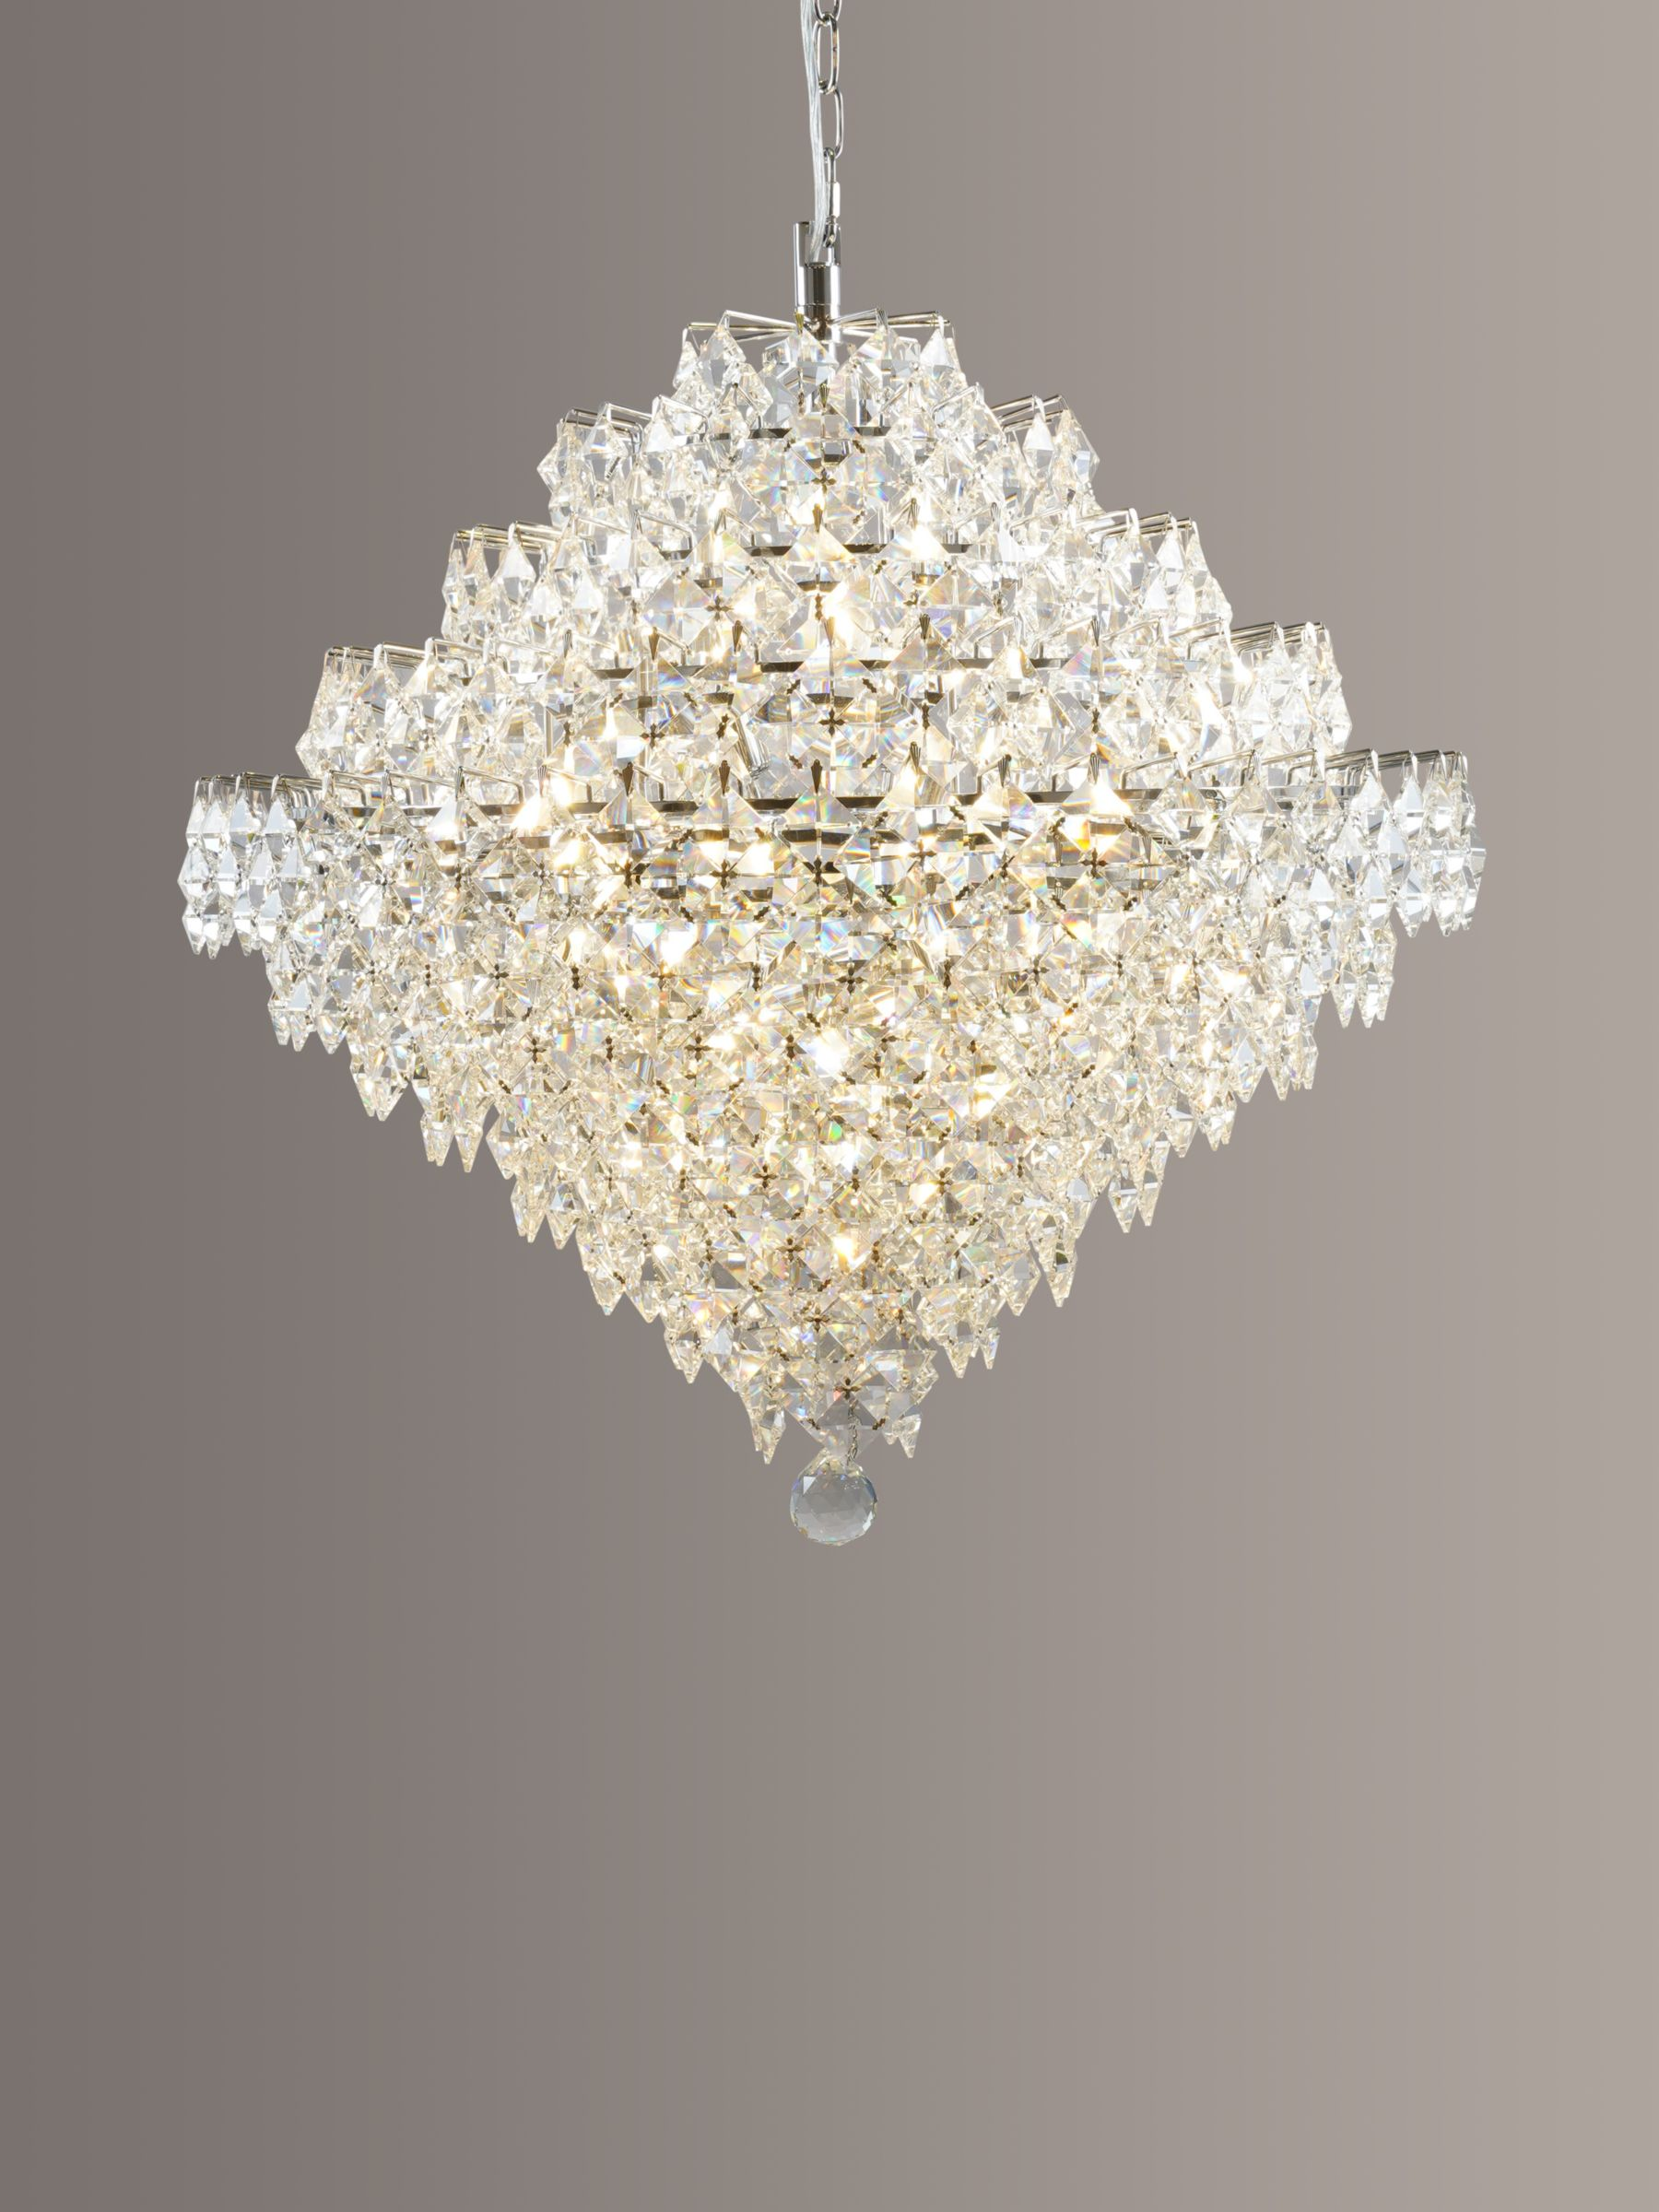 Impex Impex Diamond Lead Chandelier Ceiling Light, Clear/Chrome